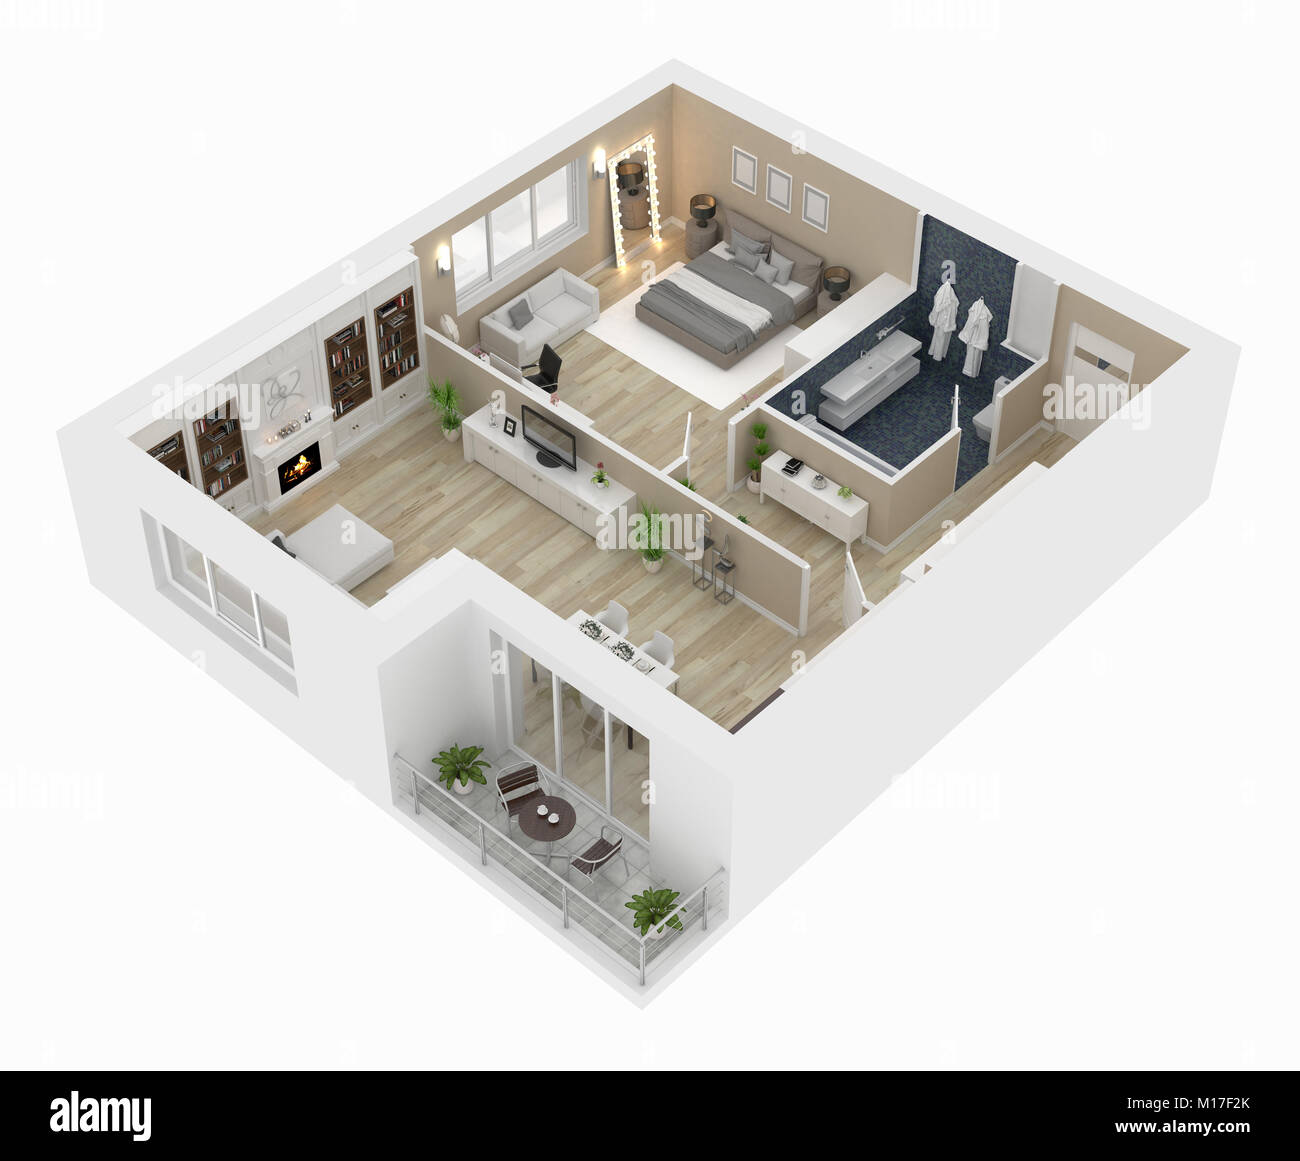 Appartment house stock photos appartment house stock for Planner casa 3d